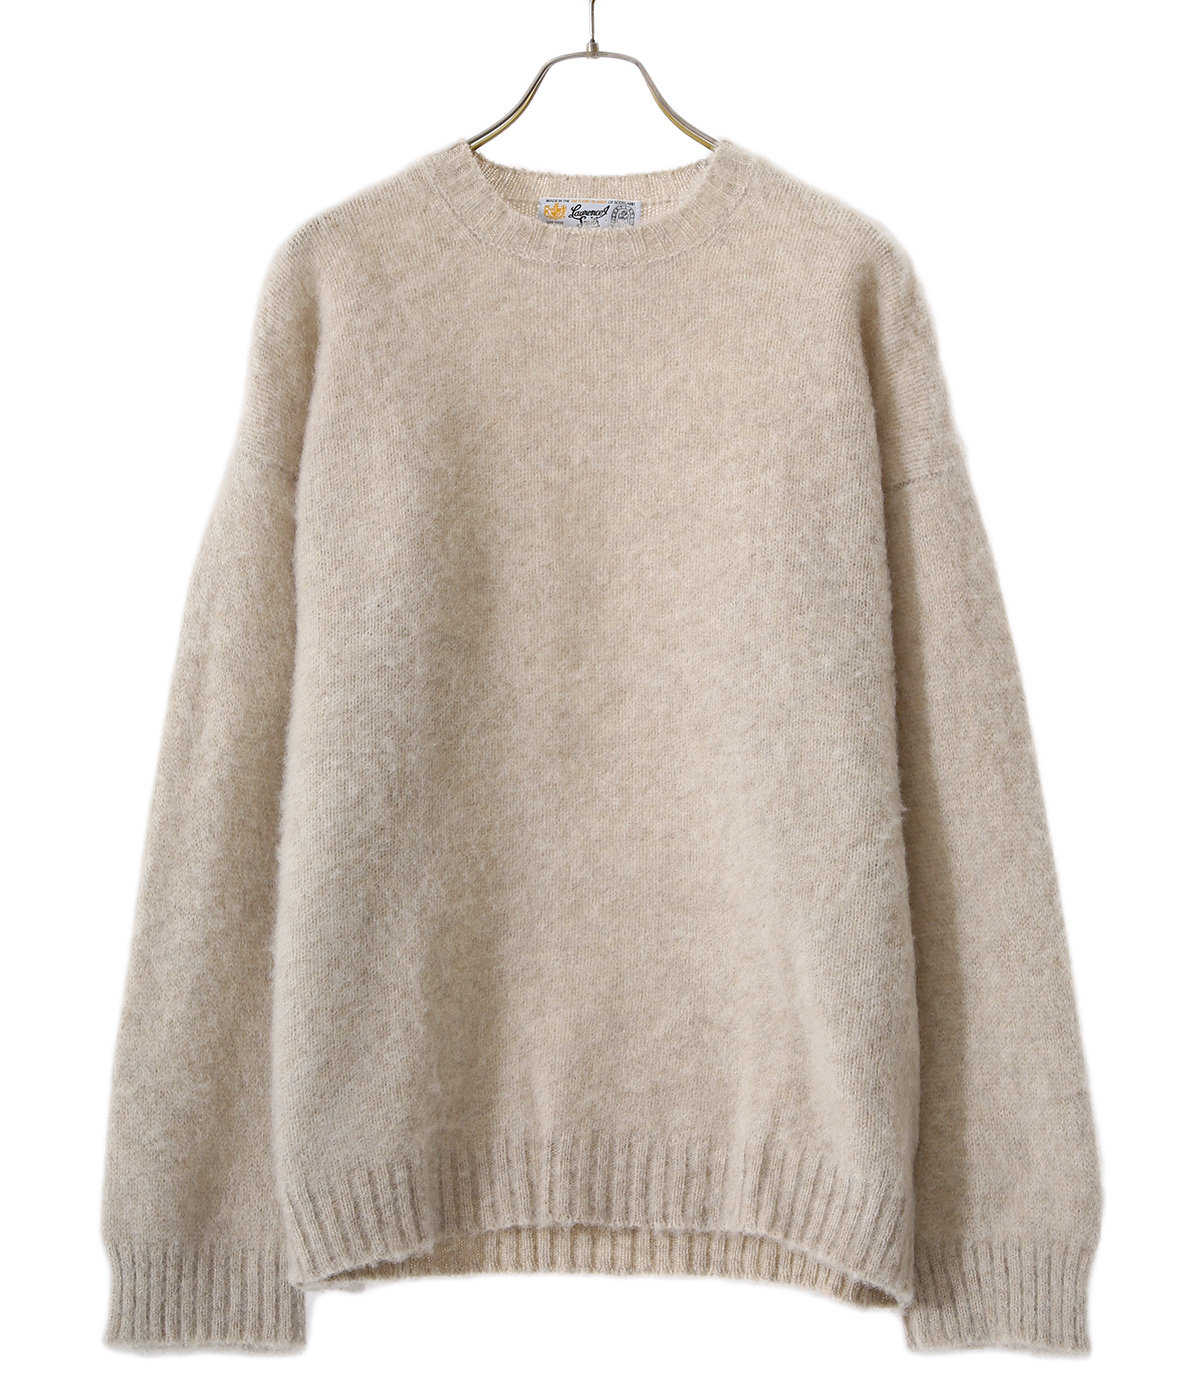 SIDE SEAM WIDE BODY CREWNECK SWEATER